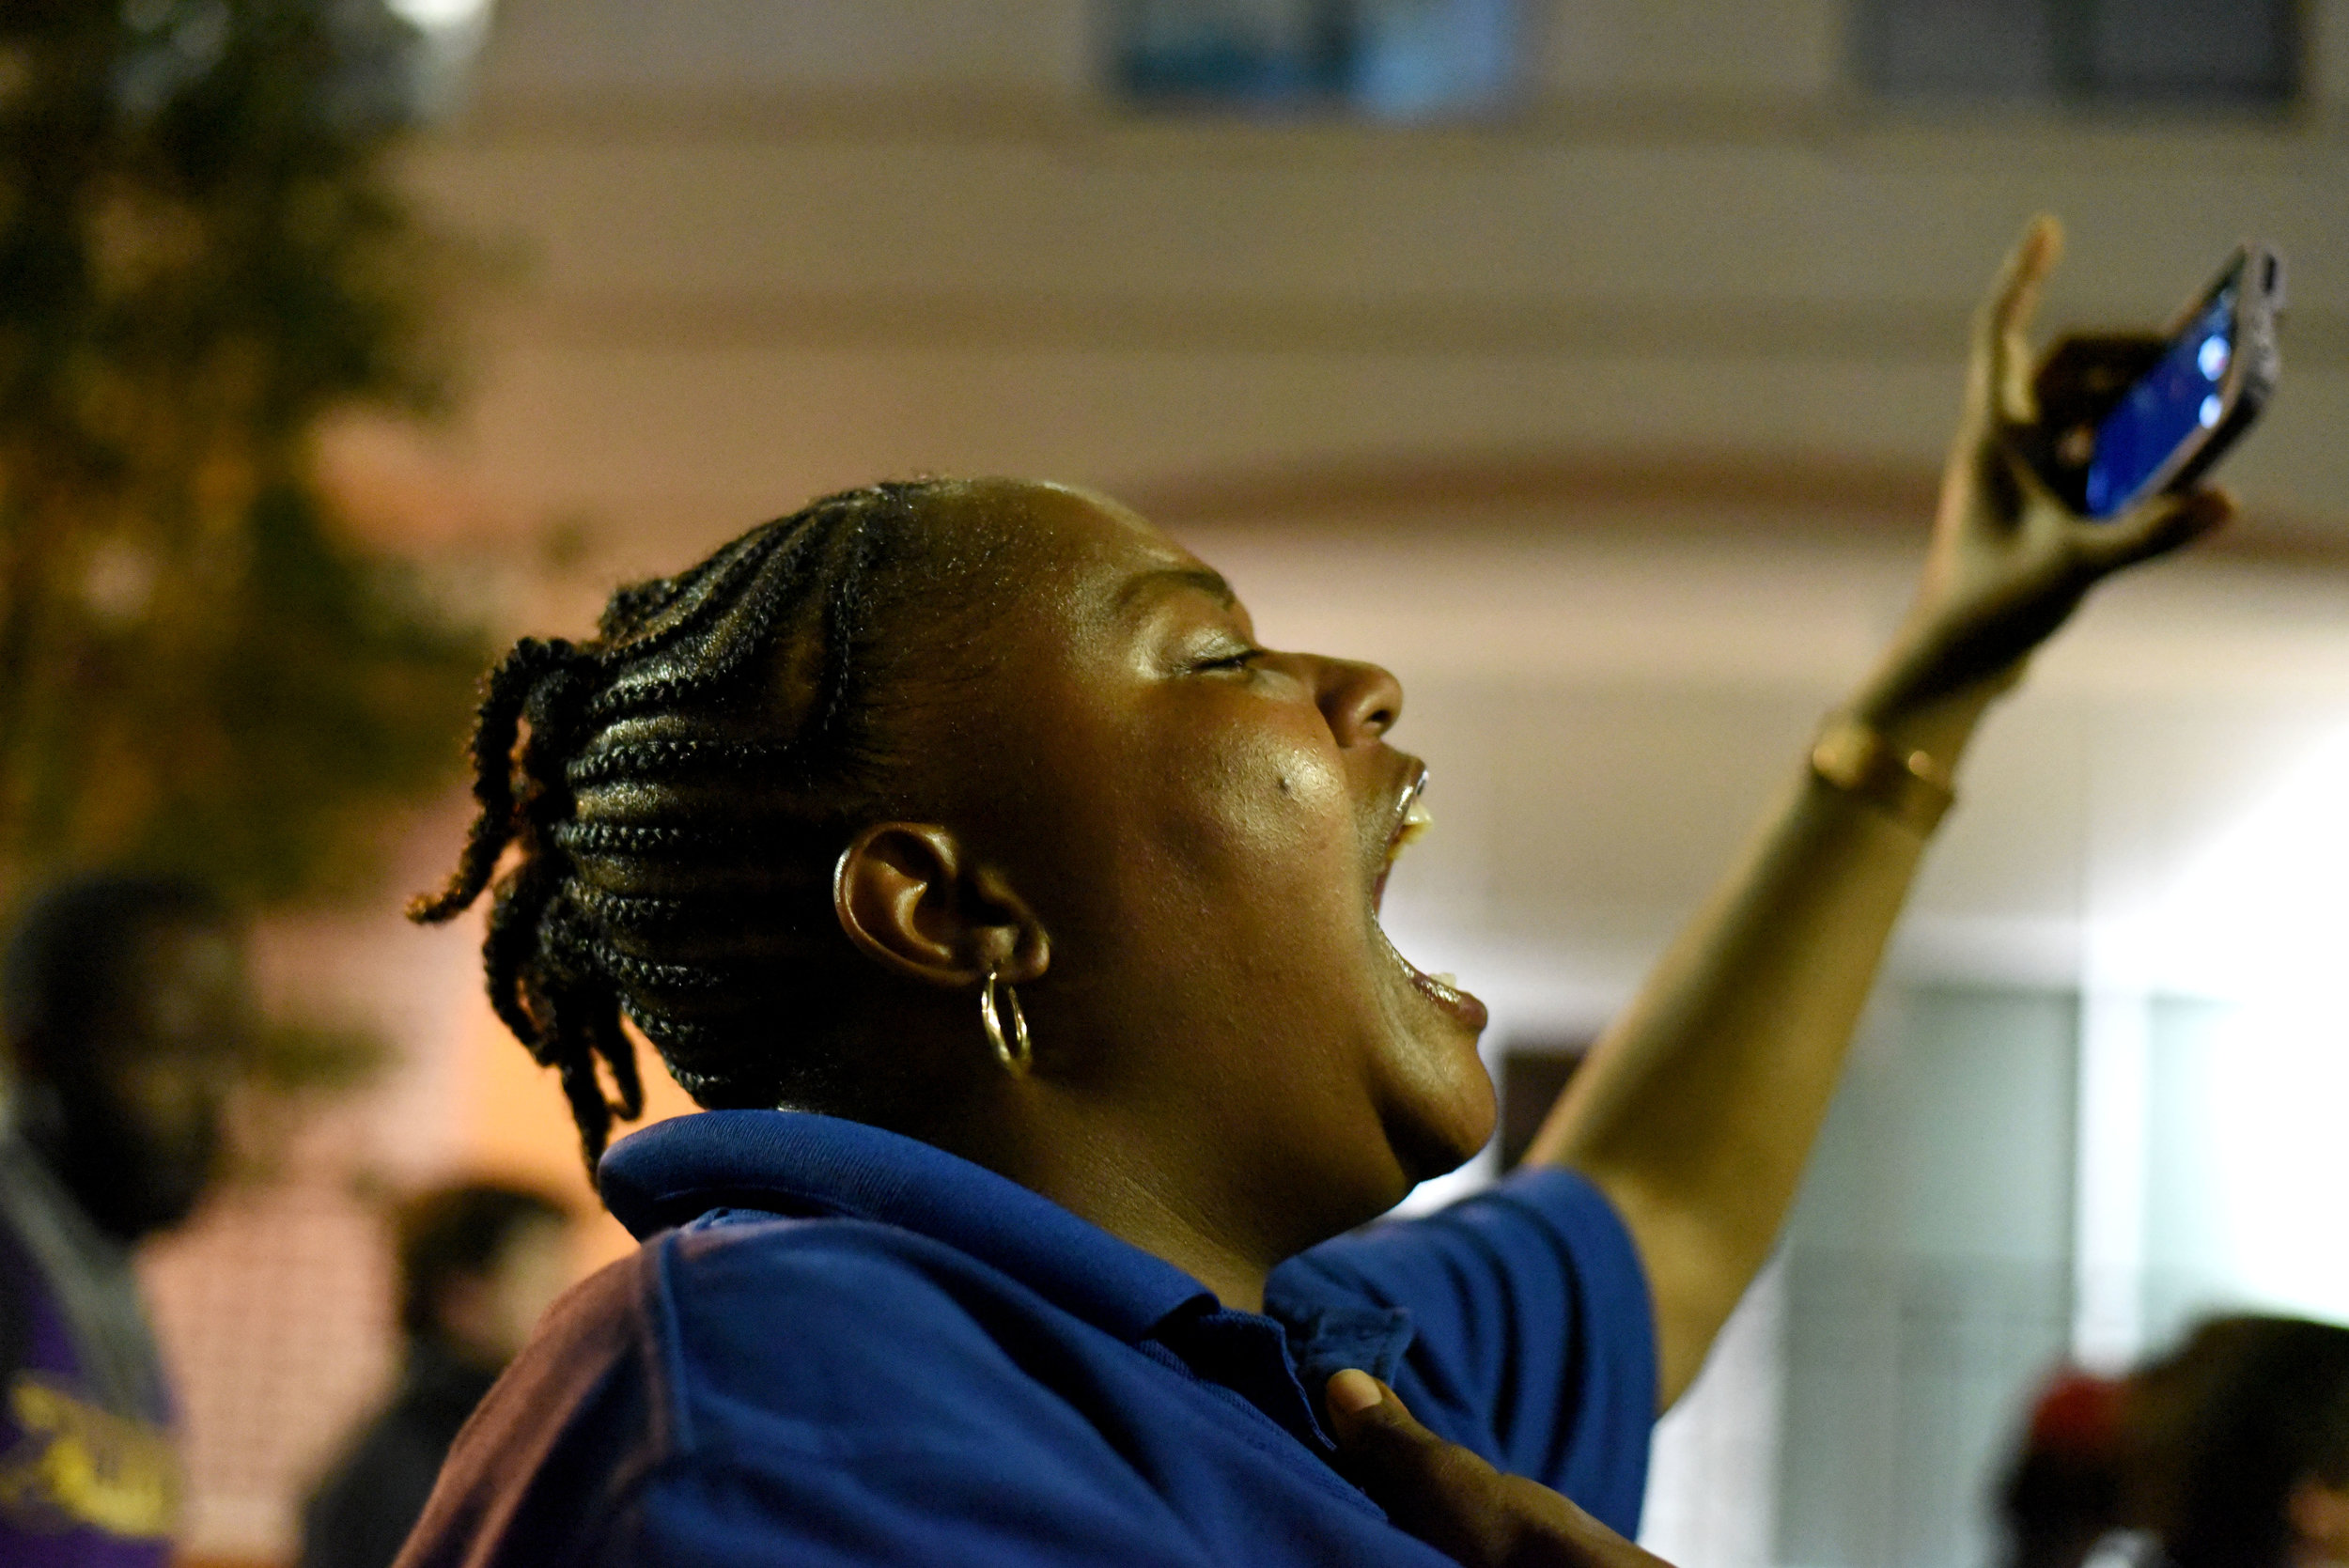 A protester shouts slogans during a protest in Charlotte, North Carolina, USA, 22 September 2016. Protesters took to the streets of Charlotte for the third consecutive night to protest the fatal 20 September shooting African-American Keith Lamont Scott by police officers.